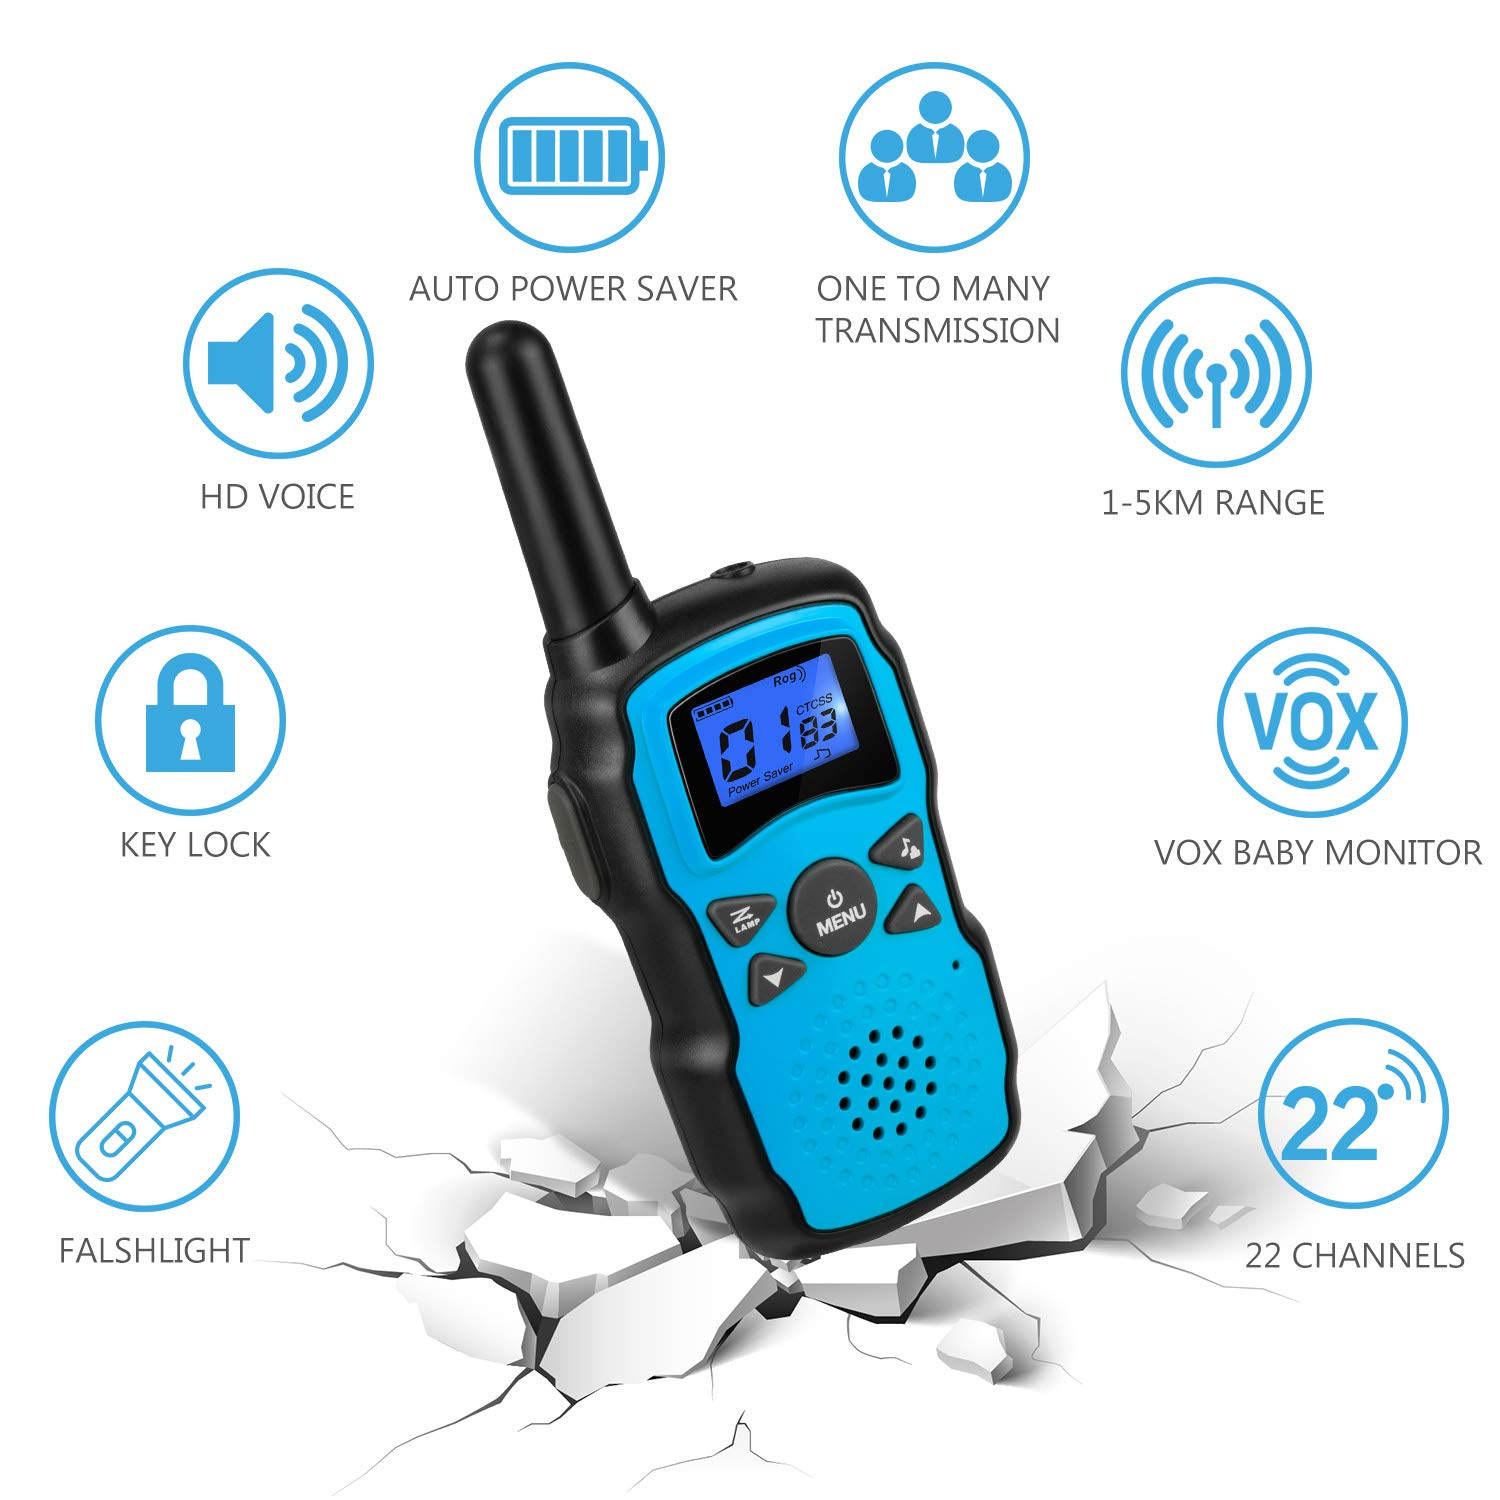 Wishouse 2 Rechargeable Walkie Talkies for Kids with Charger Battery, Two Way Radio Family Talkabout for Adult Cruise Ship Long Range, Outdoor Camping Hiking Fun Toys Birthday Gift for Girls Boys Blue by Wishouse (Image #3)